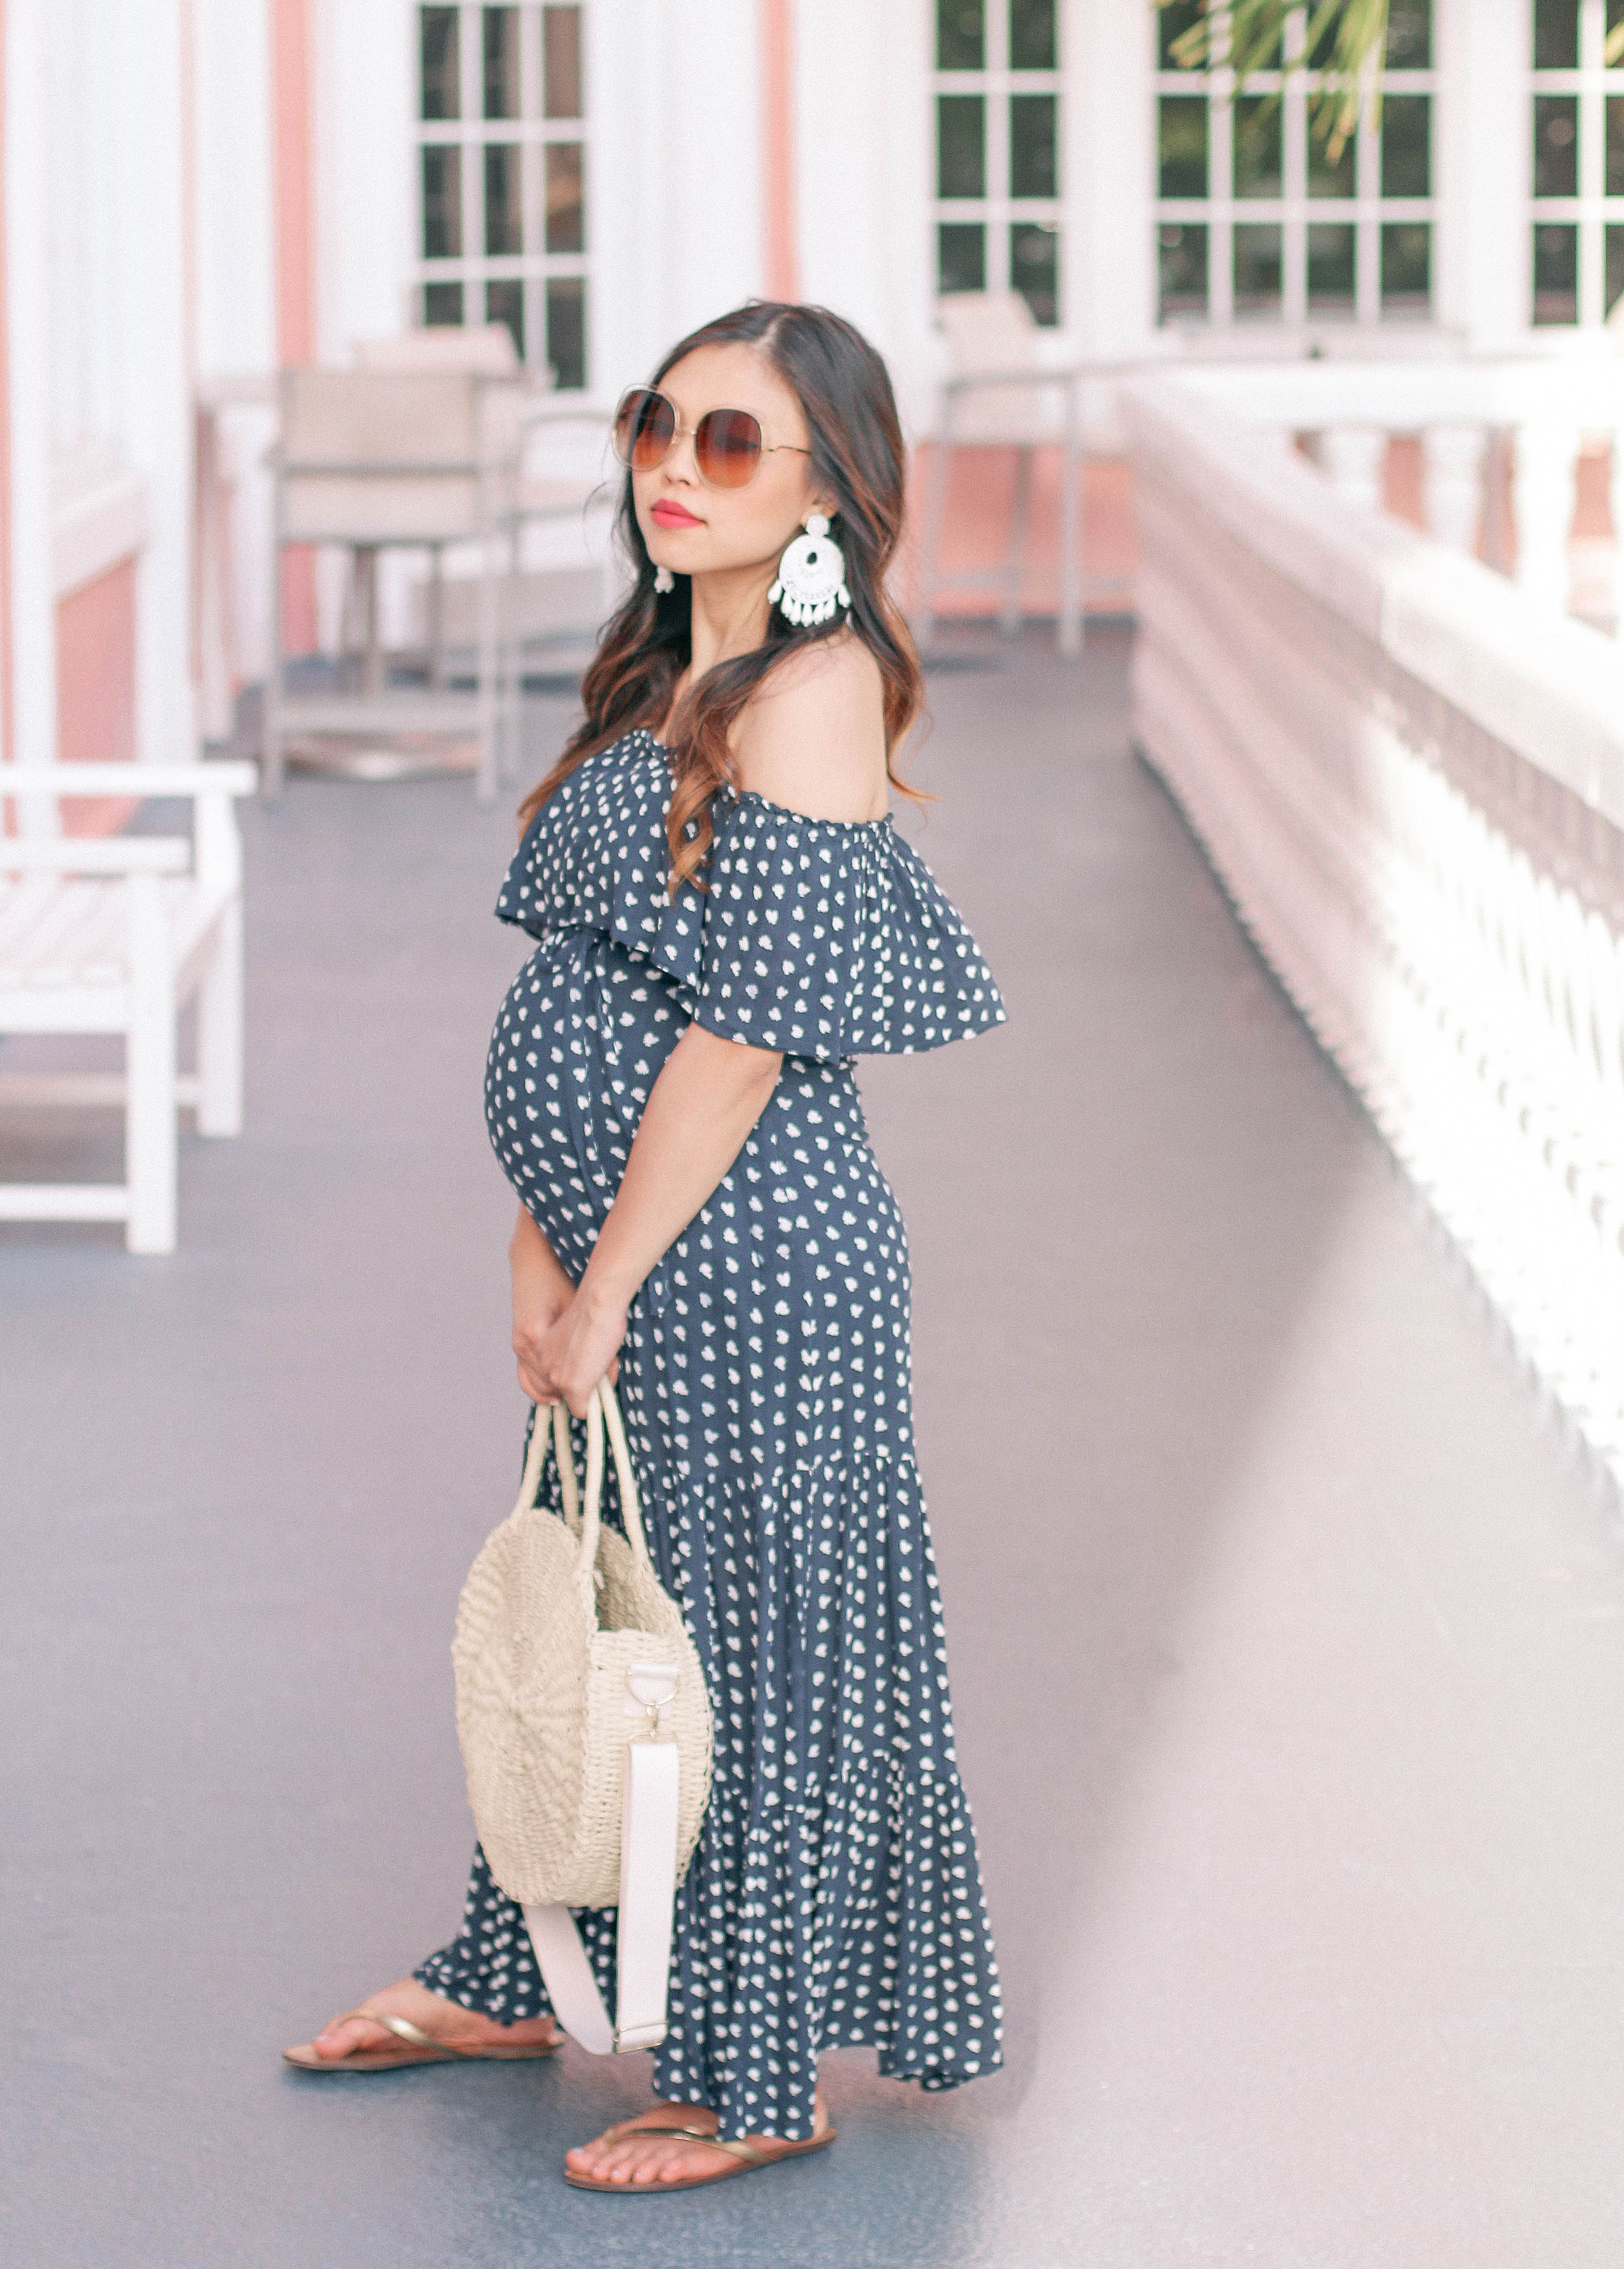 304aa033e4ea4 bump friendly maxi dress - #babymoonoutfitideas #beadedtasselearrings  #chloe #chloesunglasses #circlestrawbag #maternitystyle  #offtheshoulderdress ...